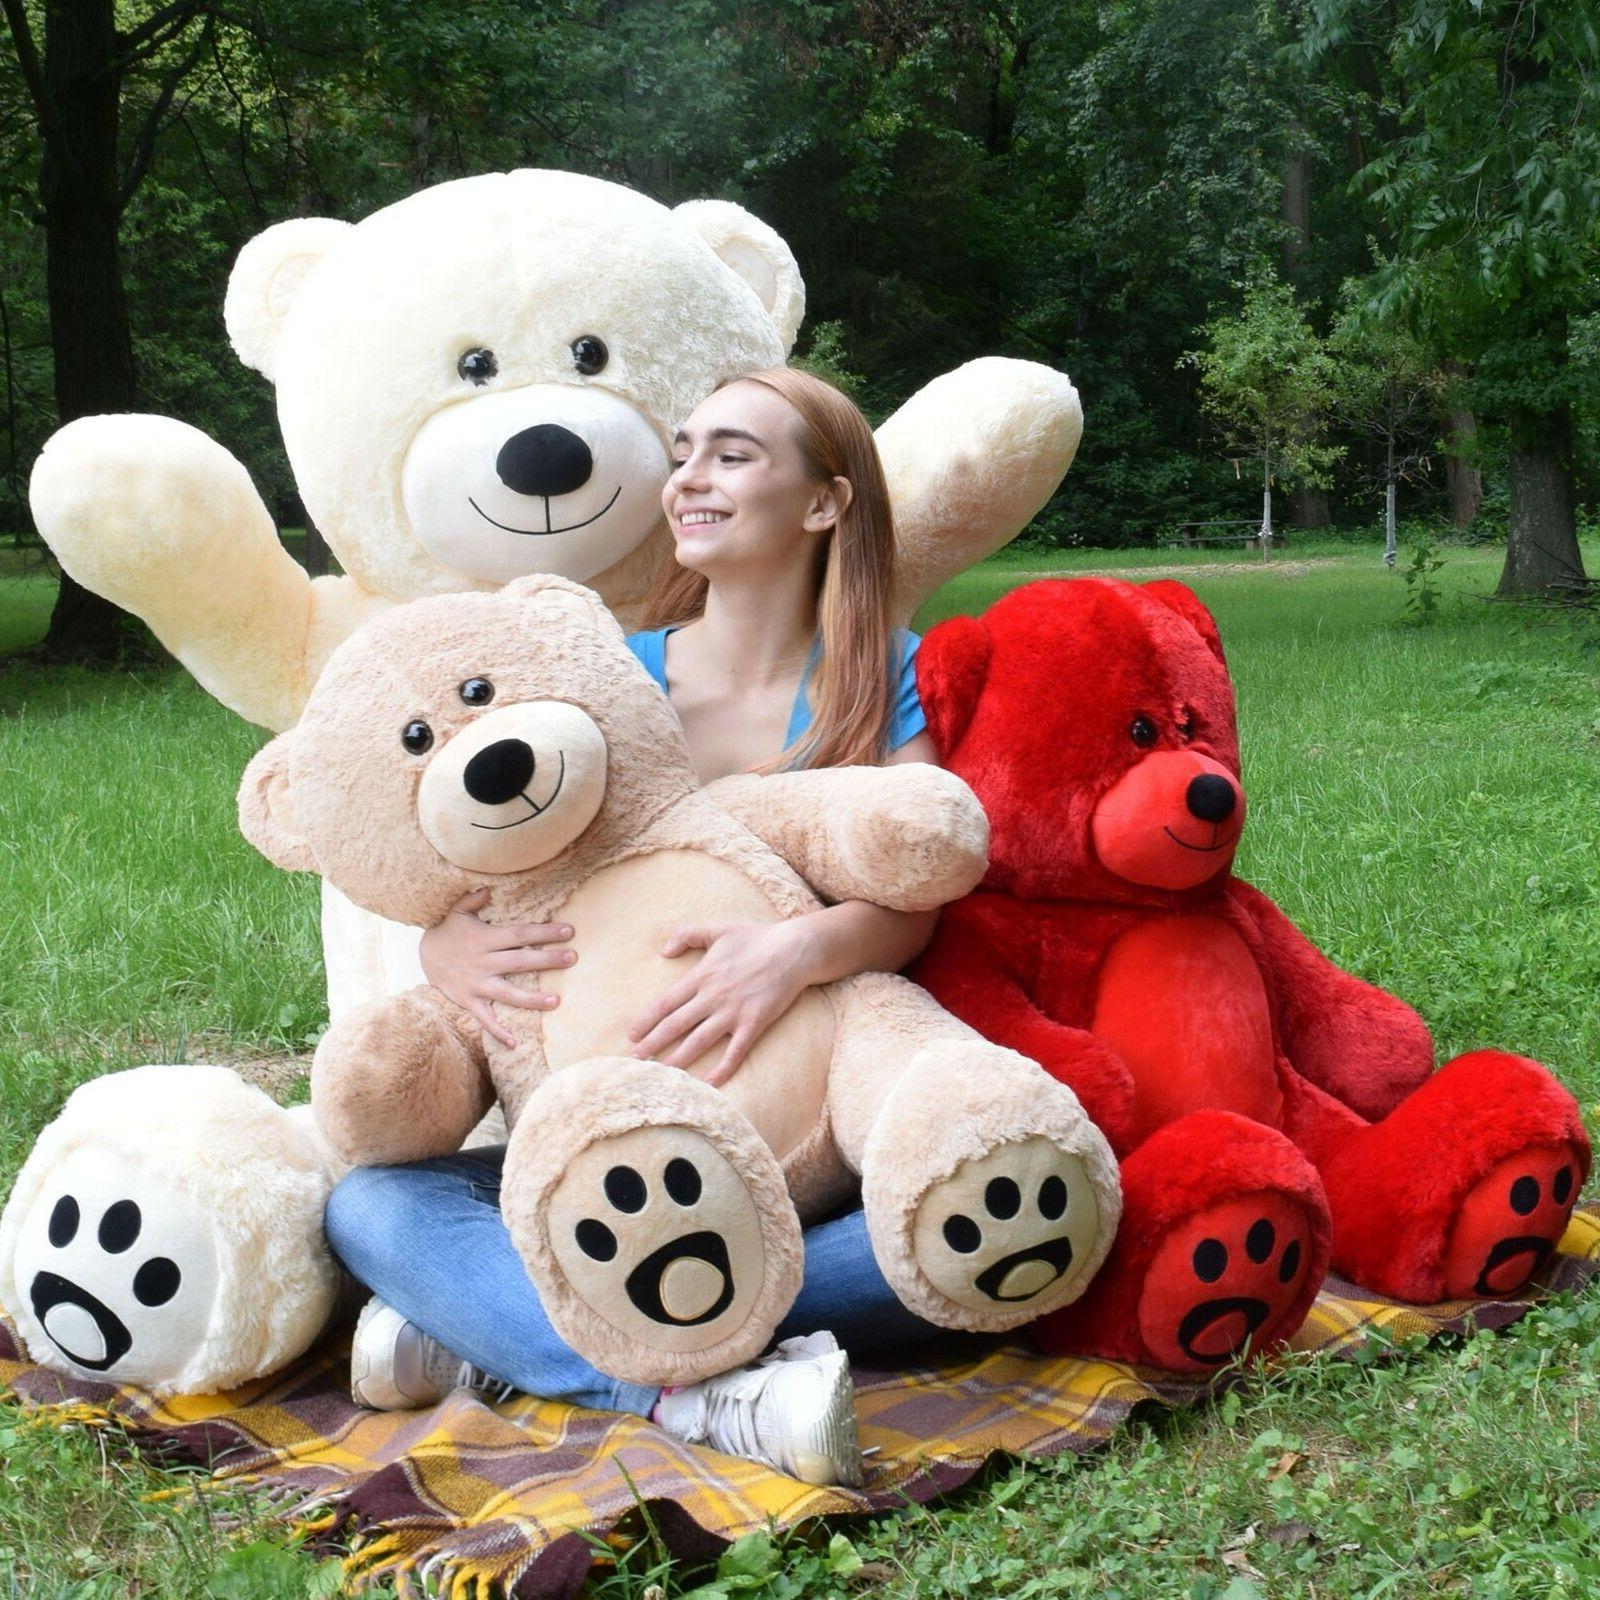 Giant Teddy Bear Stuffed Animal Birthday Valentine